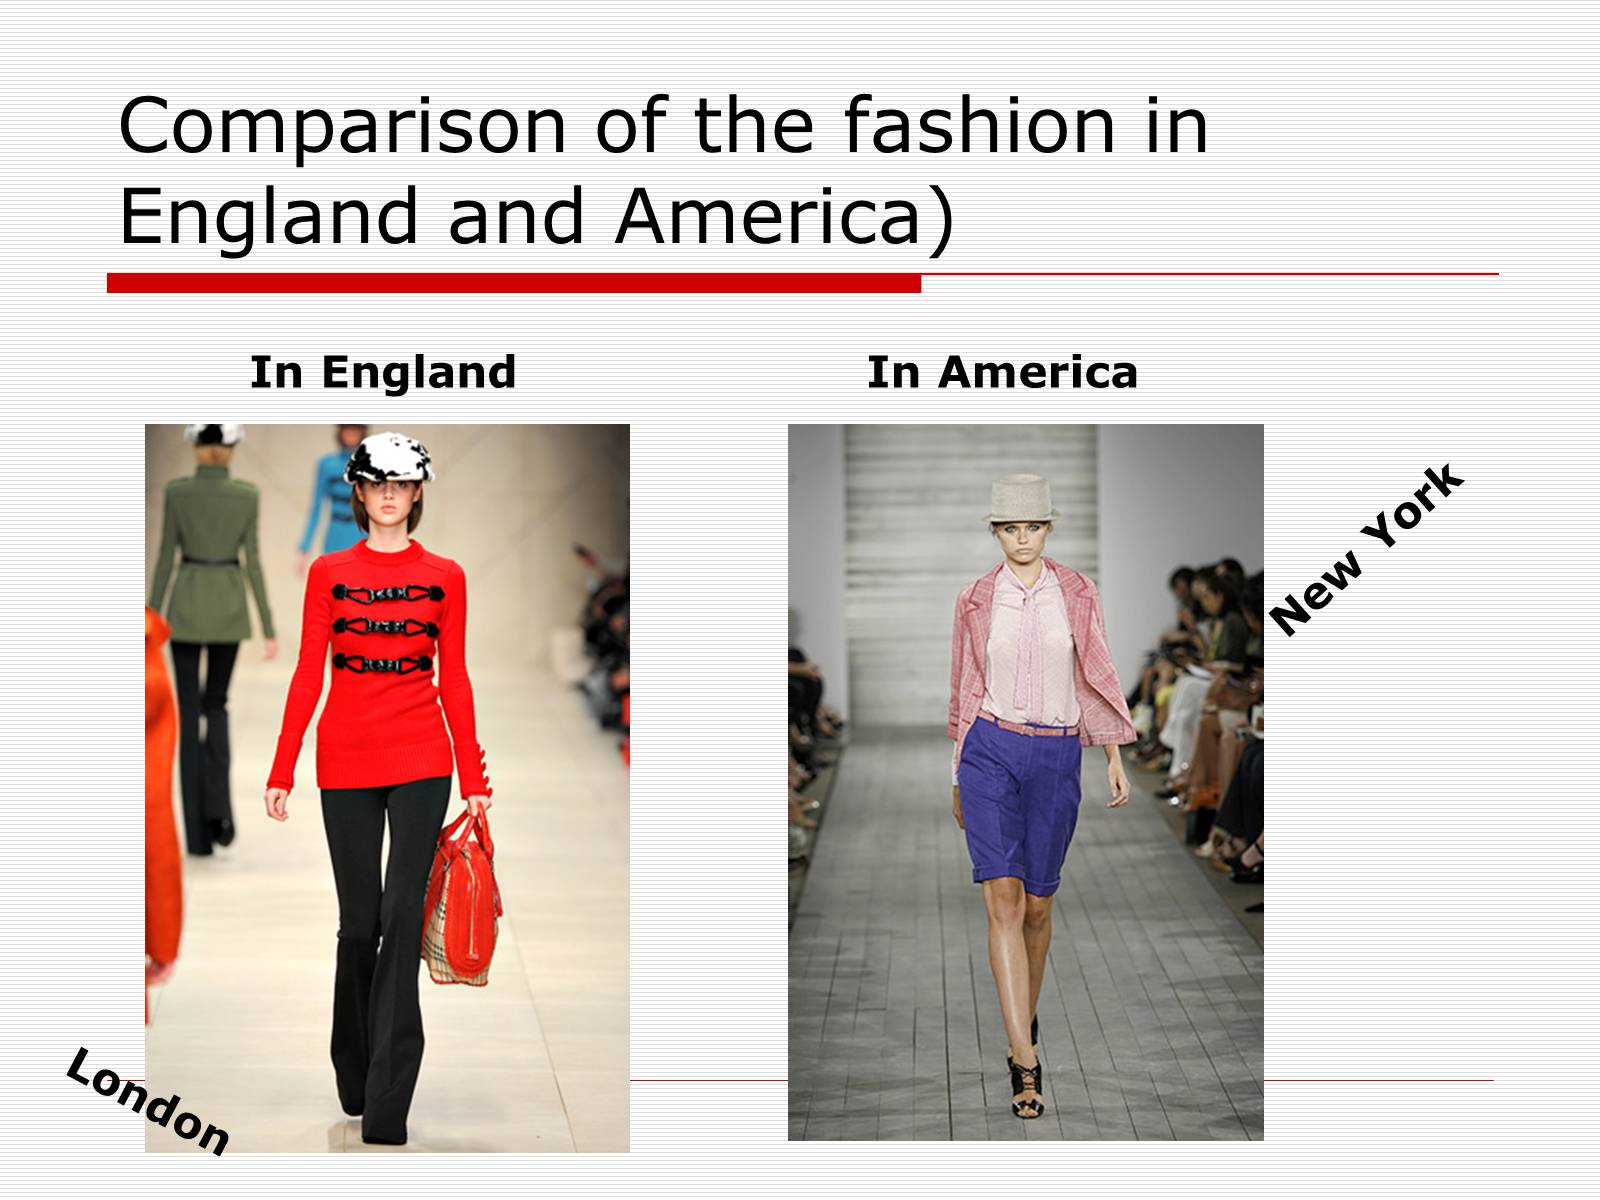 Презентація на тему «Comparison of the fashion in England and America» - Слайд #46